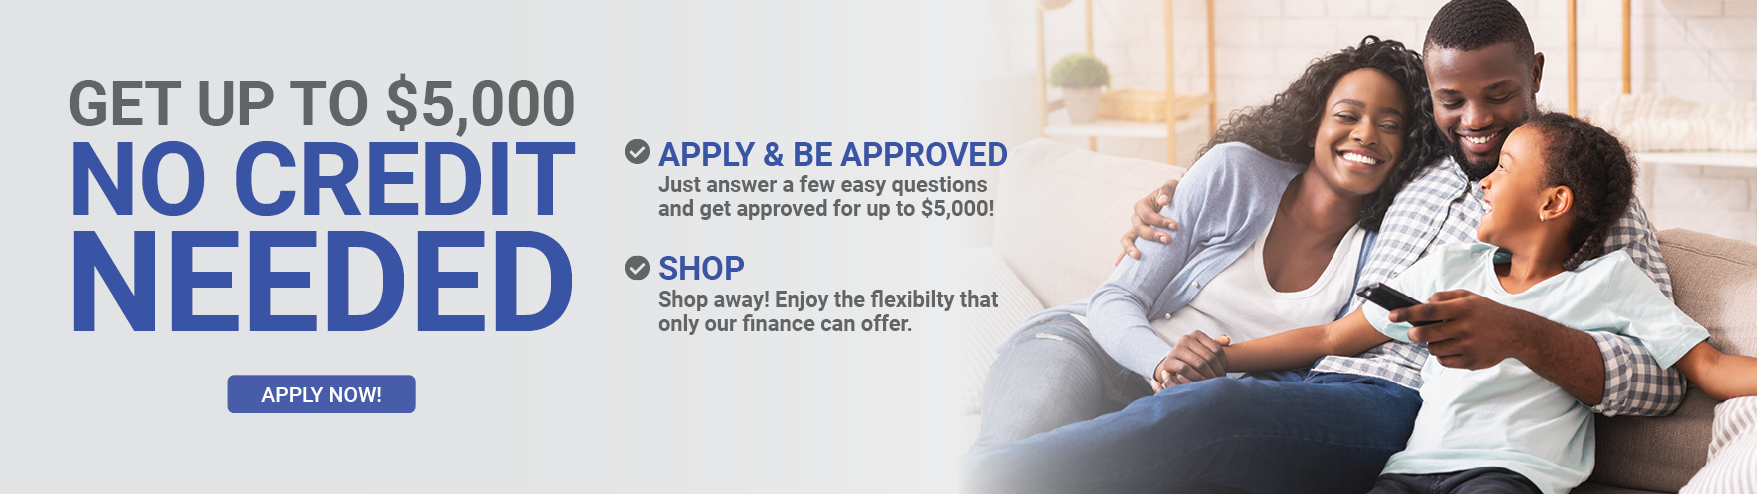 Flexiable financing options just for you